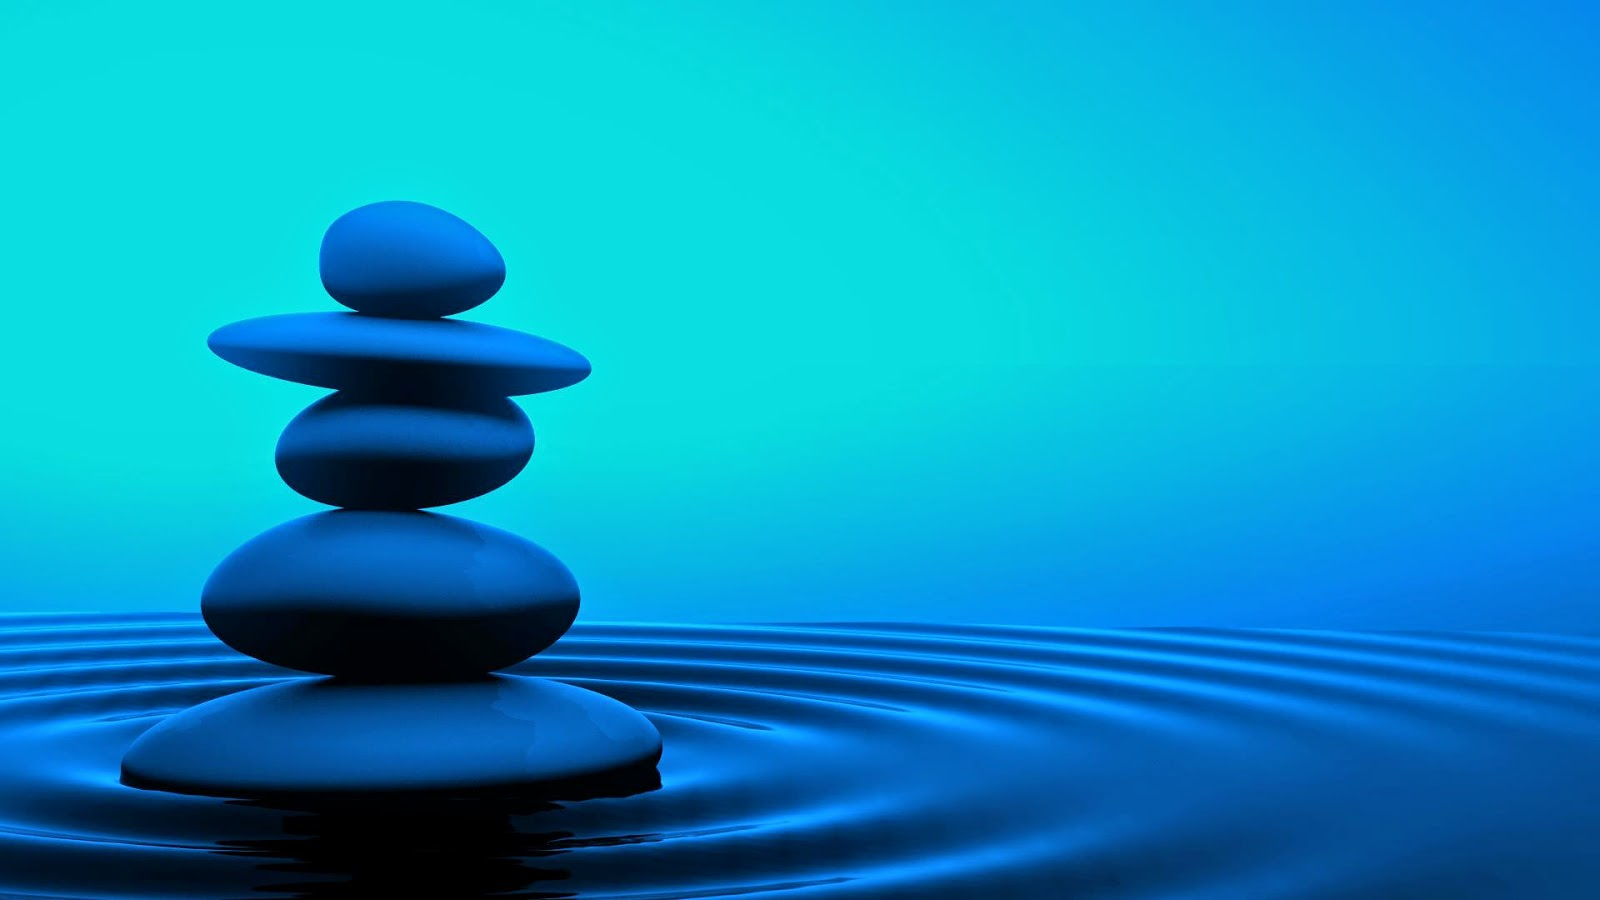 Serenity-Zen-Water-Stones-picture-Full-HD1920x1080.jpg